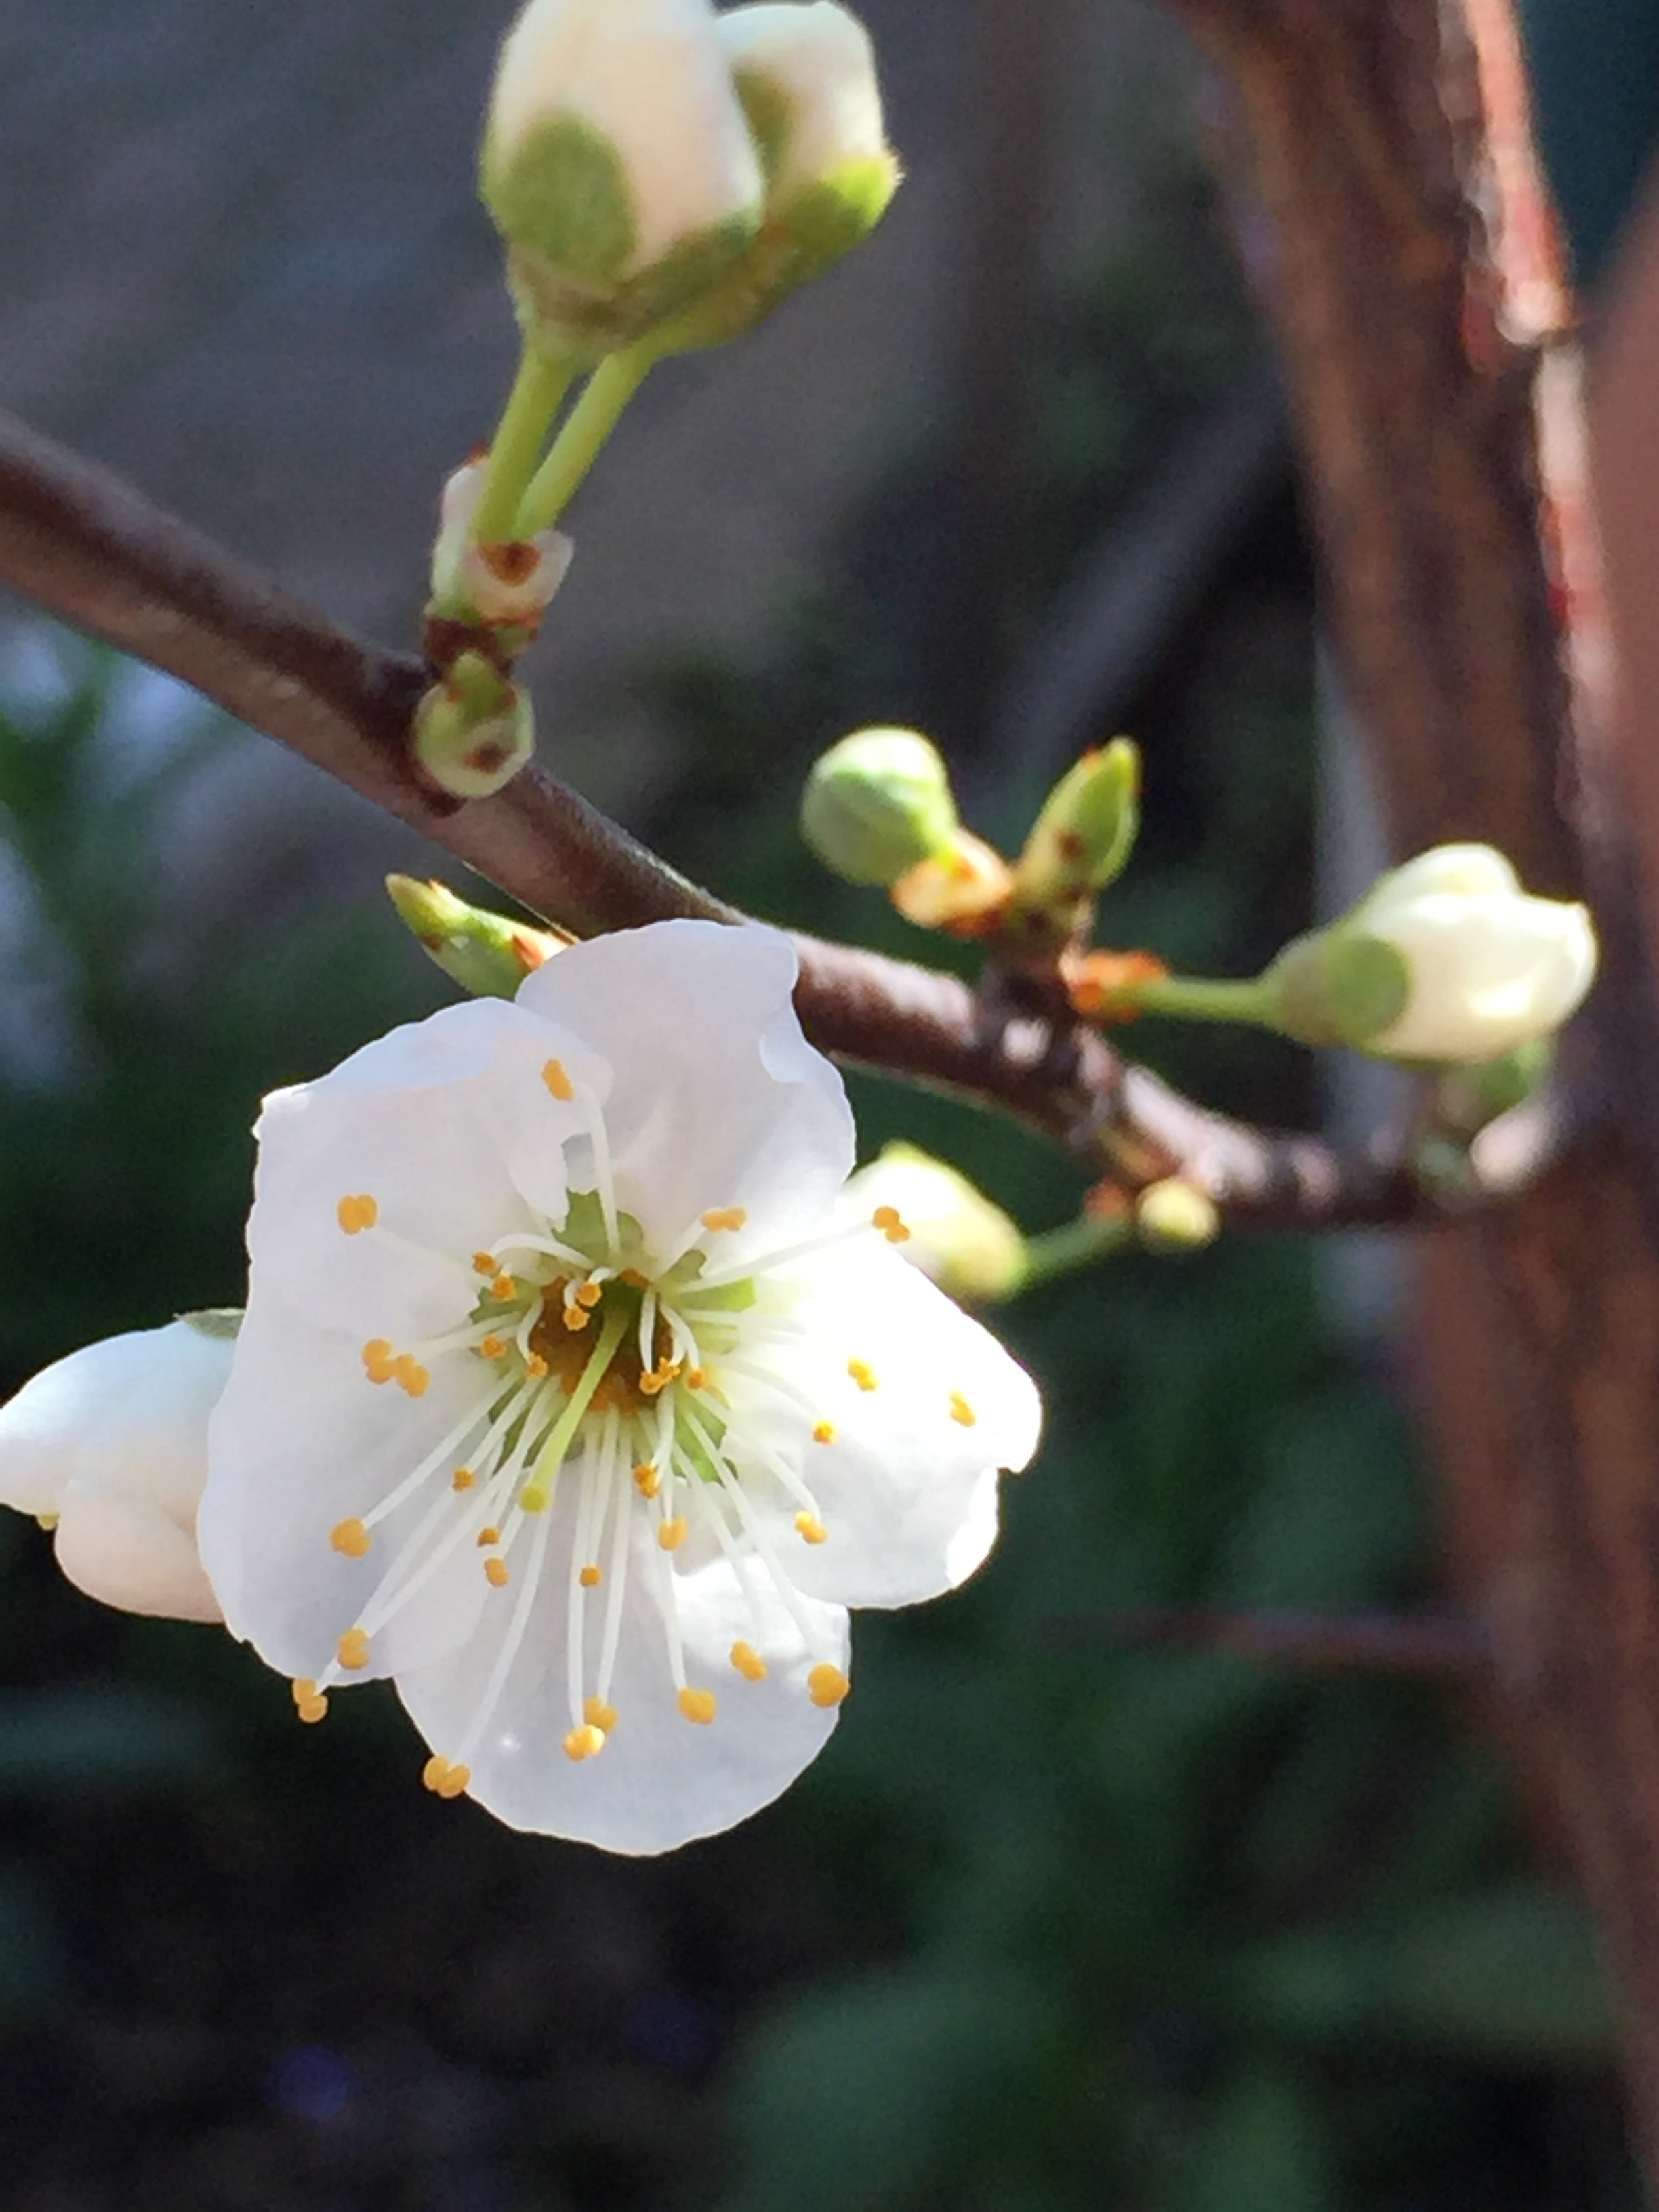 Our Santa Rosa plum is blooming heavily this year! Very exciting, as this means we will likely get a good fruit set. Santa Rosa plum is a cultivar developed by Luther Burbank in Santa Rosa CA in 1906. It's a very popular plum tree here.